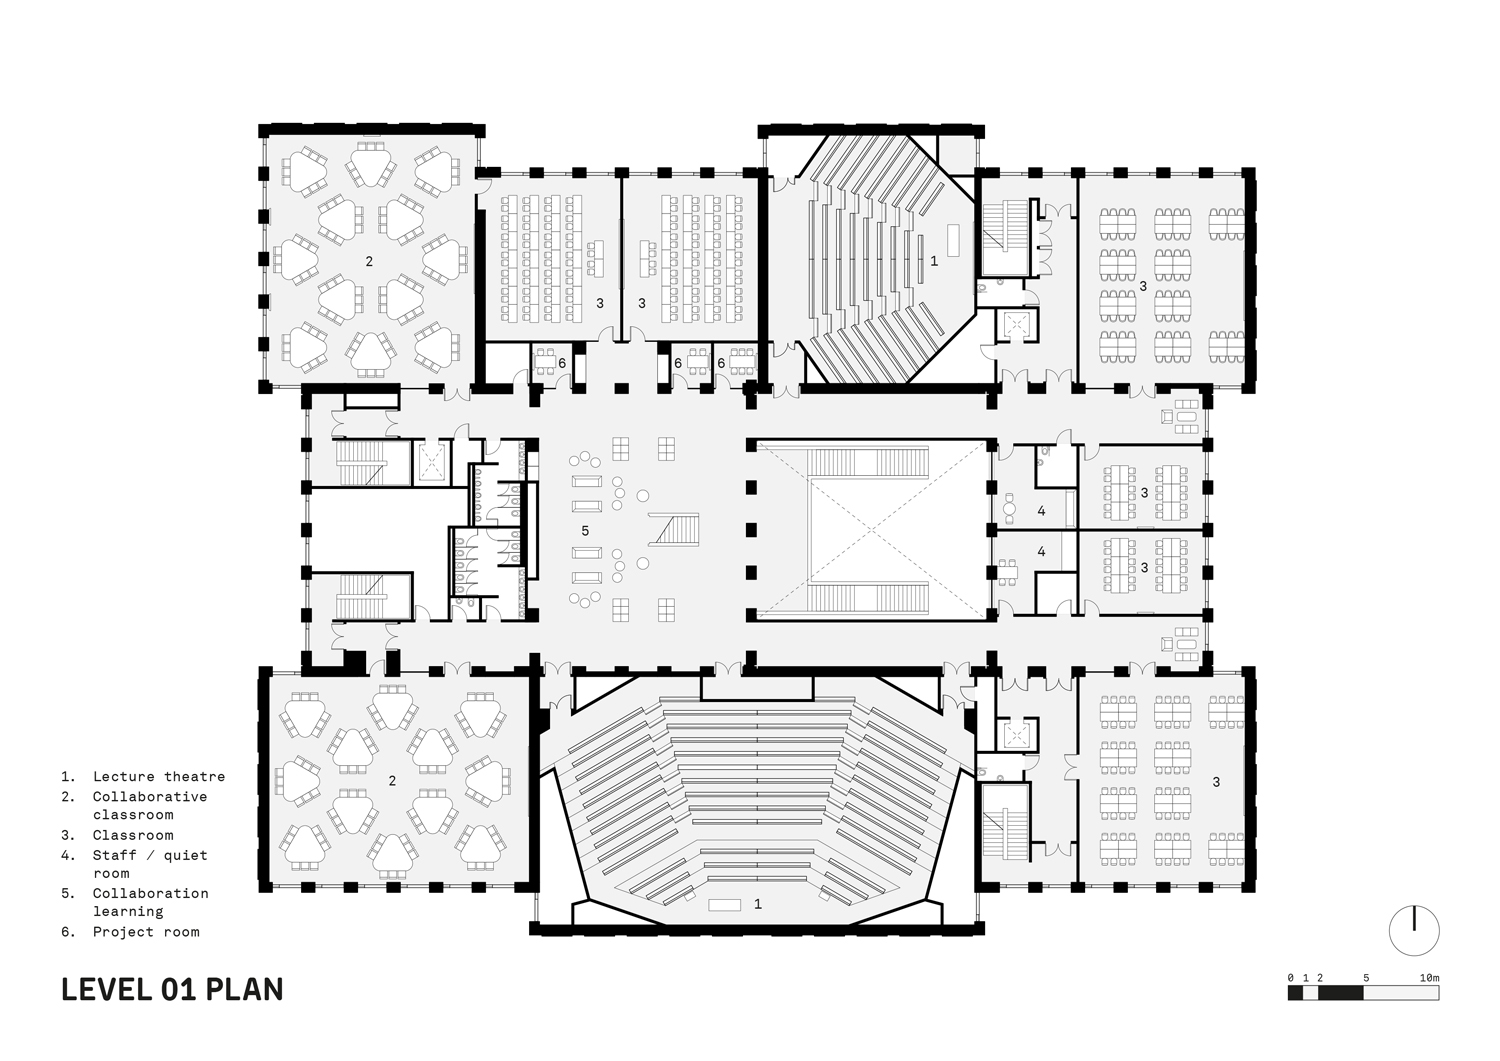 Level 01 Plan FaulknerBrowns Architects}